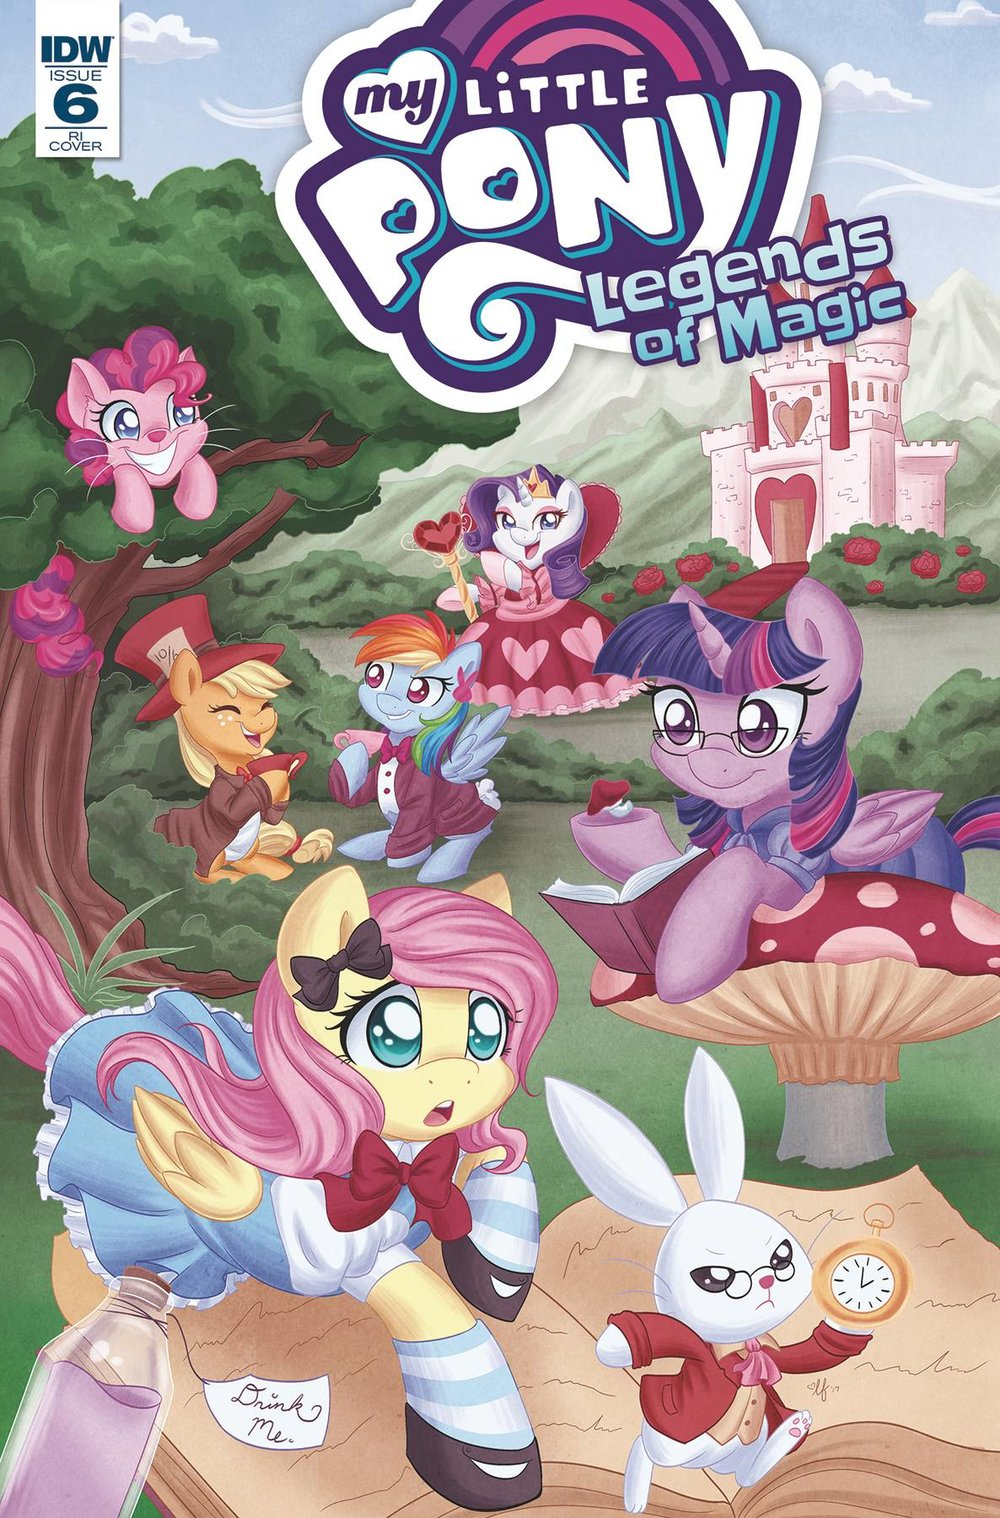 MY LITTLE PONY LEGENDS OF MAGIC 6 10 COPY INCV.jpg